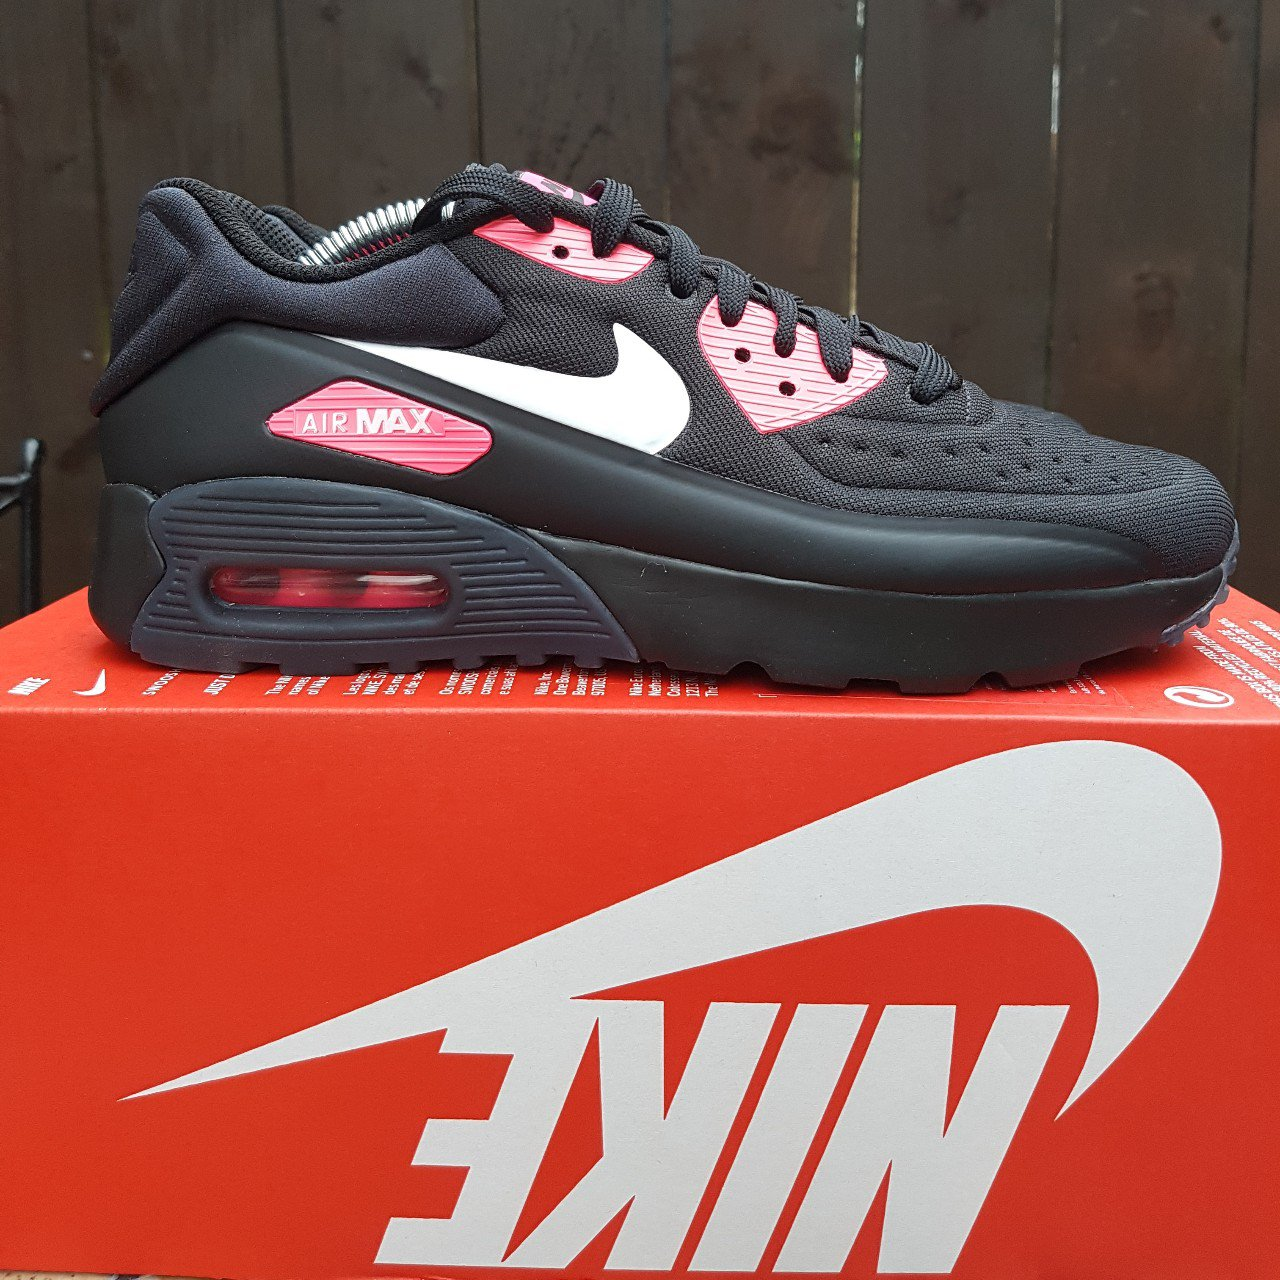 official photos a7ea6 ca9ad  kgstr4iners. 2 years ago. Tyne and Wear, United Kingdom. BRAND NEW!!  WOMEN S  GIRLS NIKE AIR MAX 90 ...